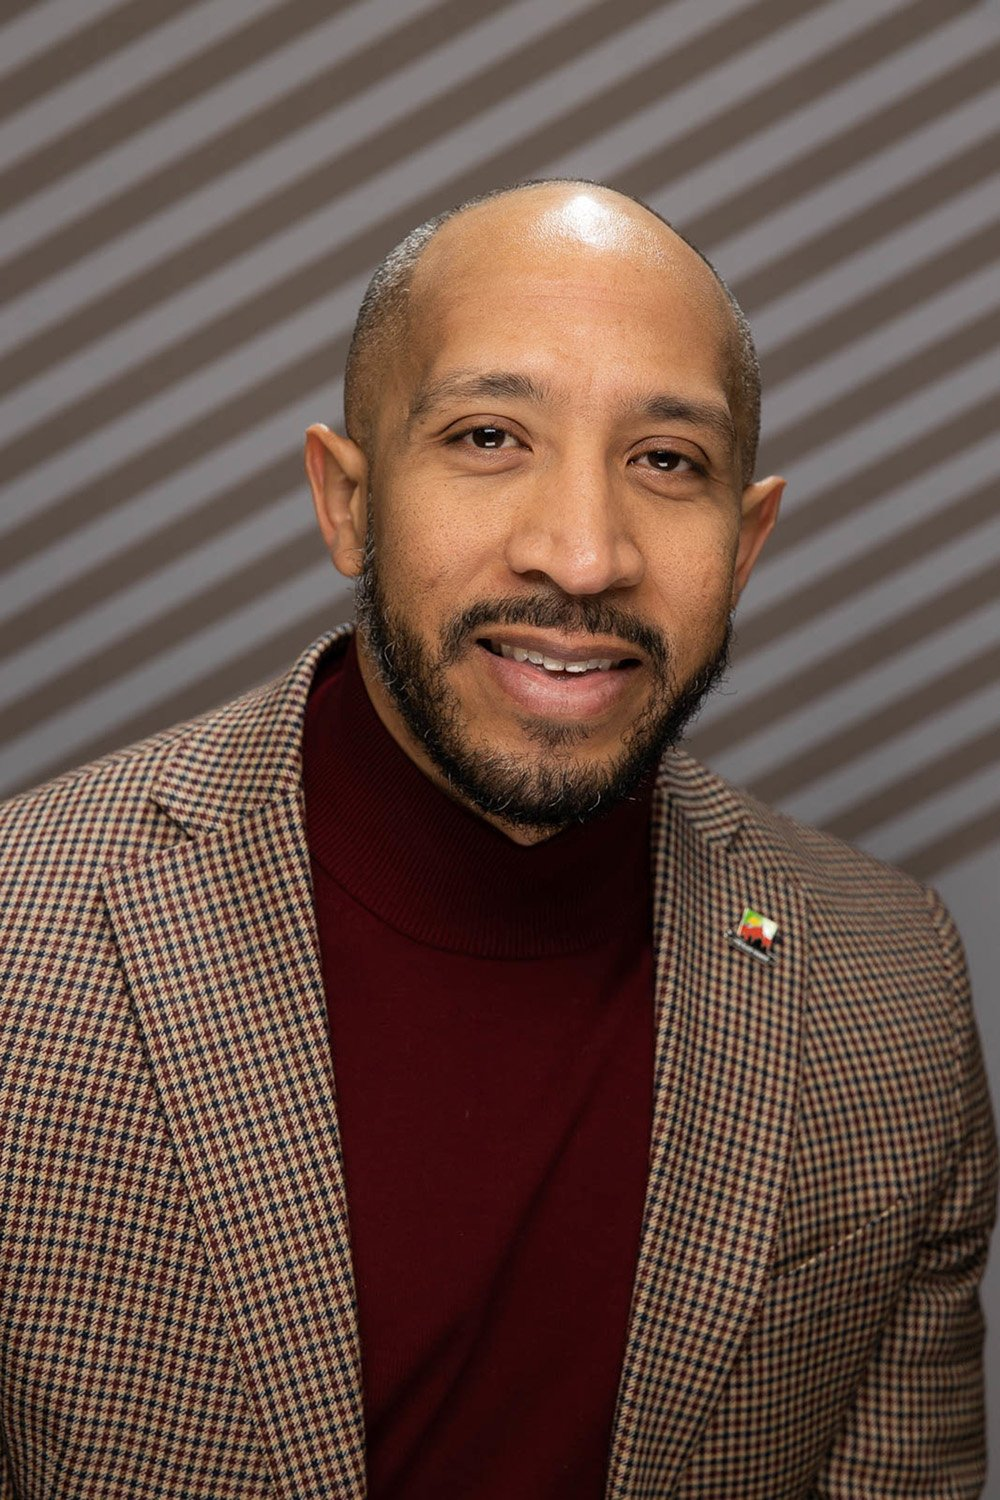 Portrait of James Jackson he sits in a brown checked suit with a maroon sweater in front of a brown and gray diagonal striped wall